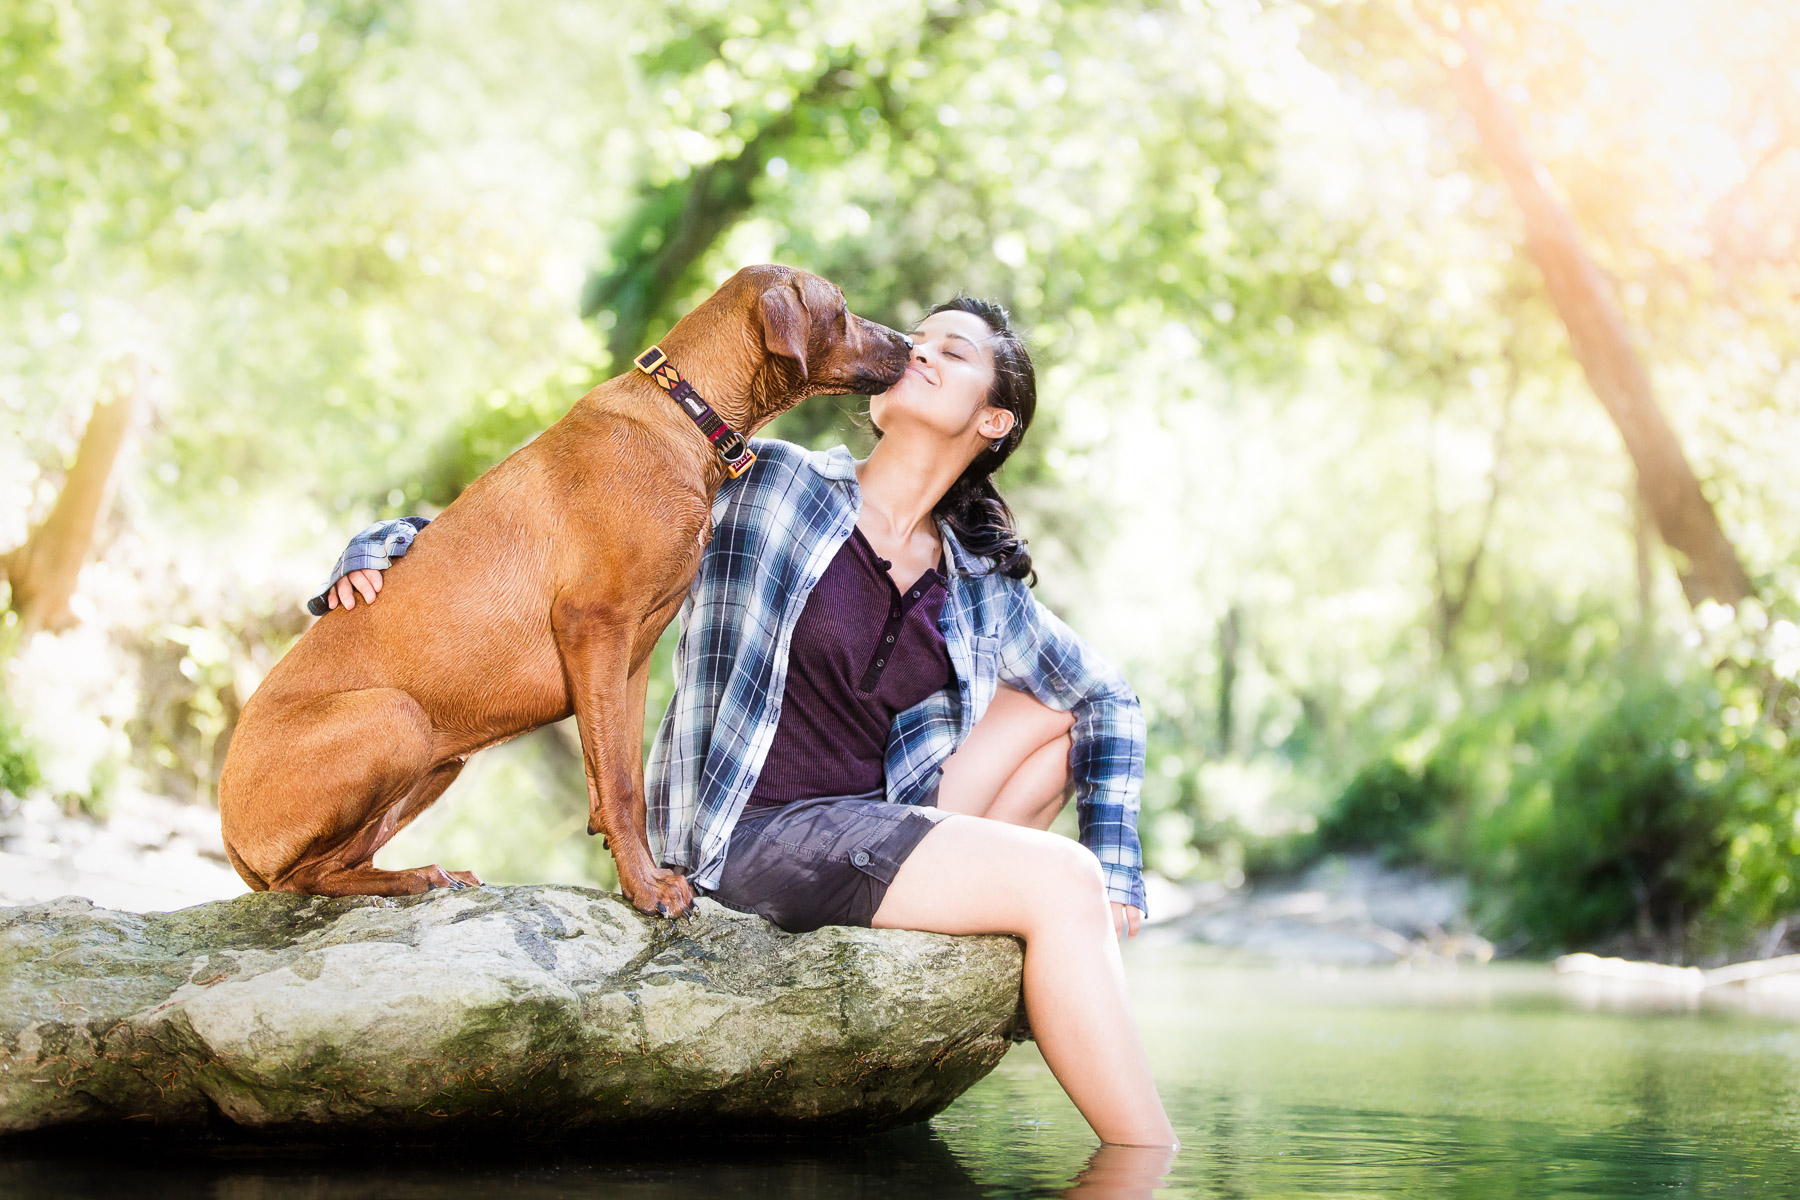 commercial-animal-photographer-dog-hiking-with-girl-creek-river.jpg